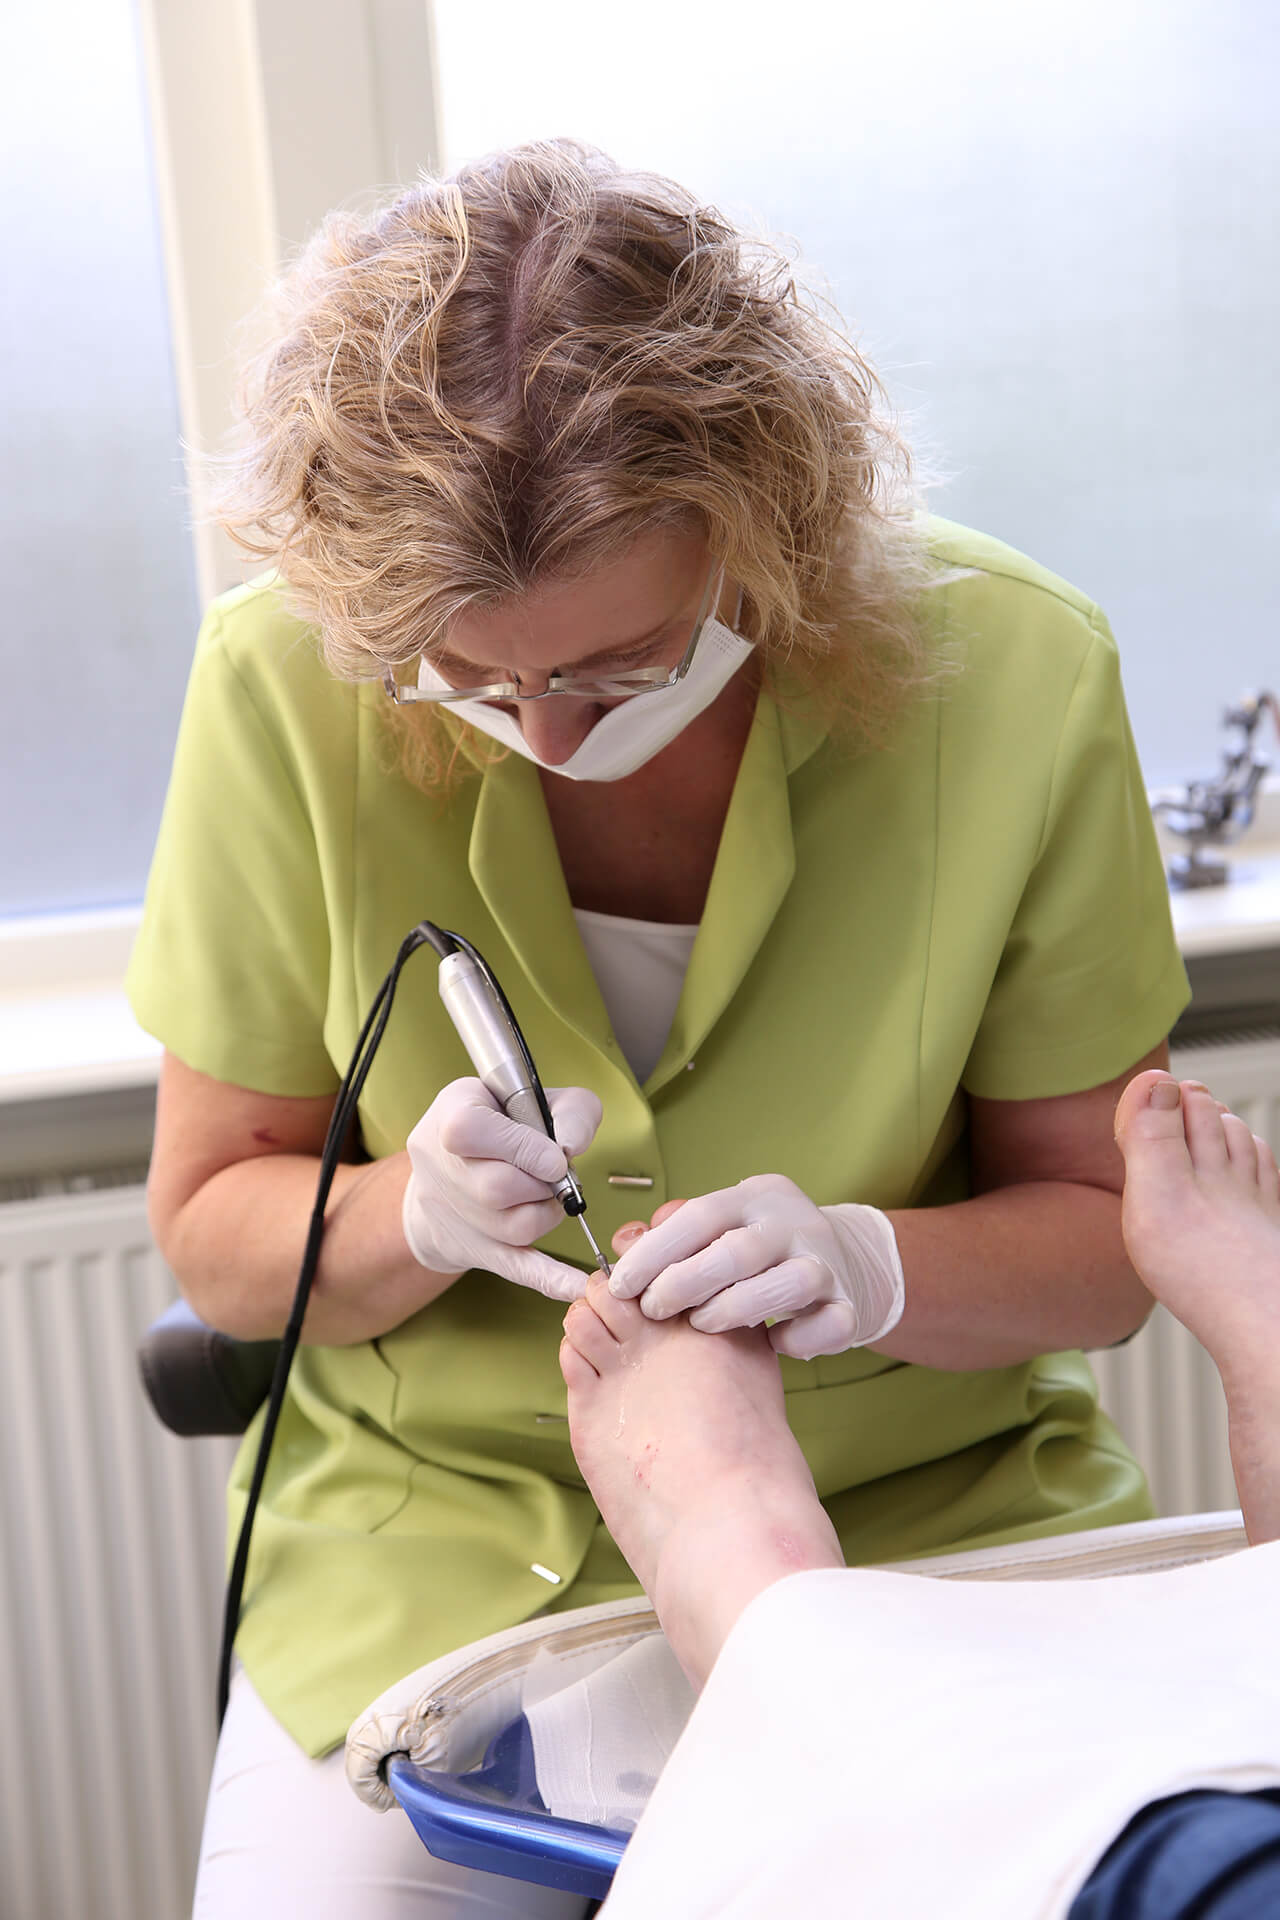 Schoonheidssalon en Pedicure Foot & Beauty care